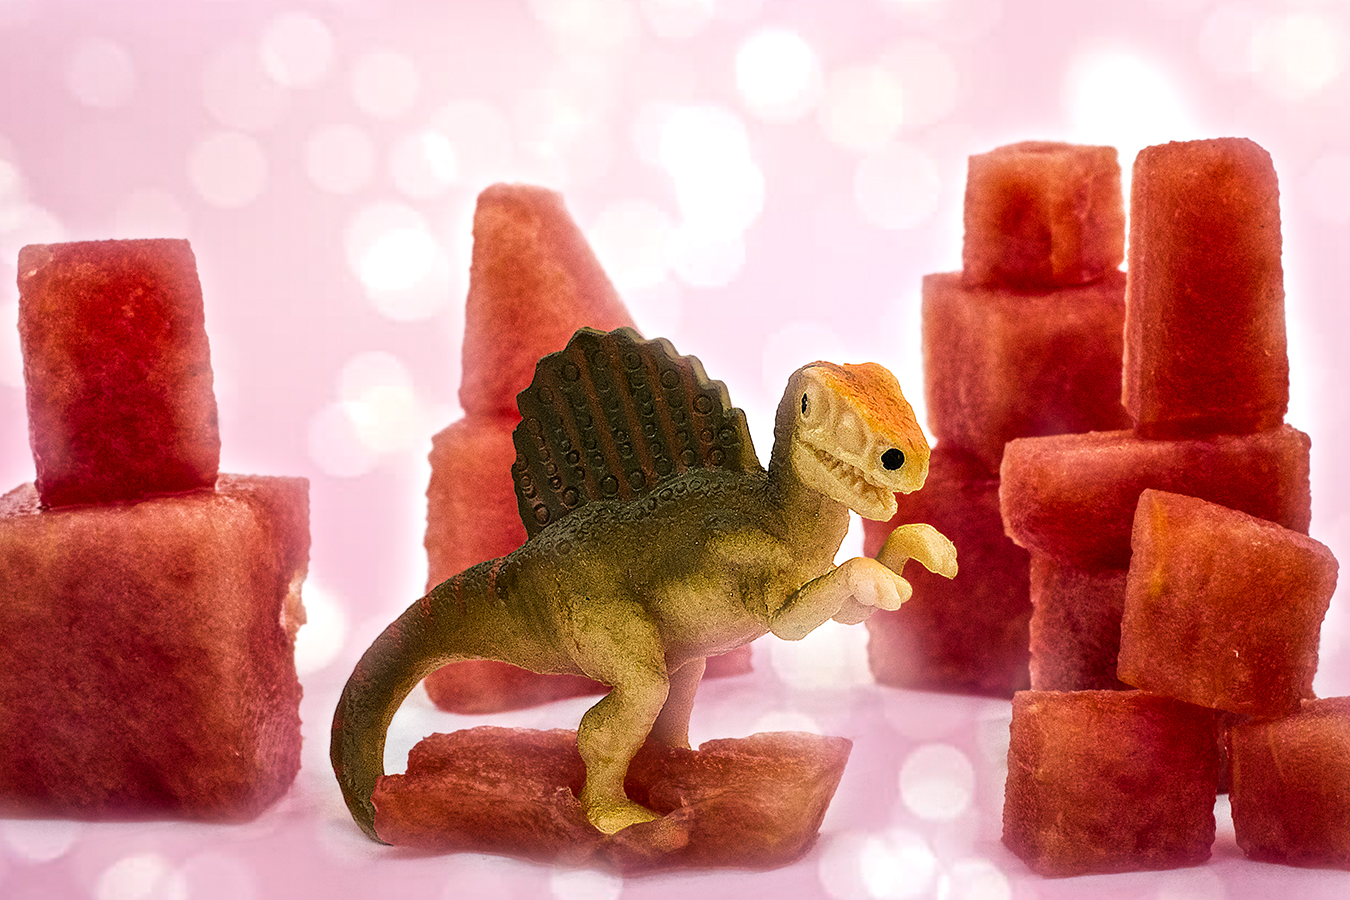 Victoria_Meng_Project2_Watermelon_Dinosaur_Sparkle_Pink_Pastel_Still_Life_Light